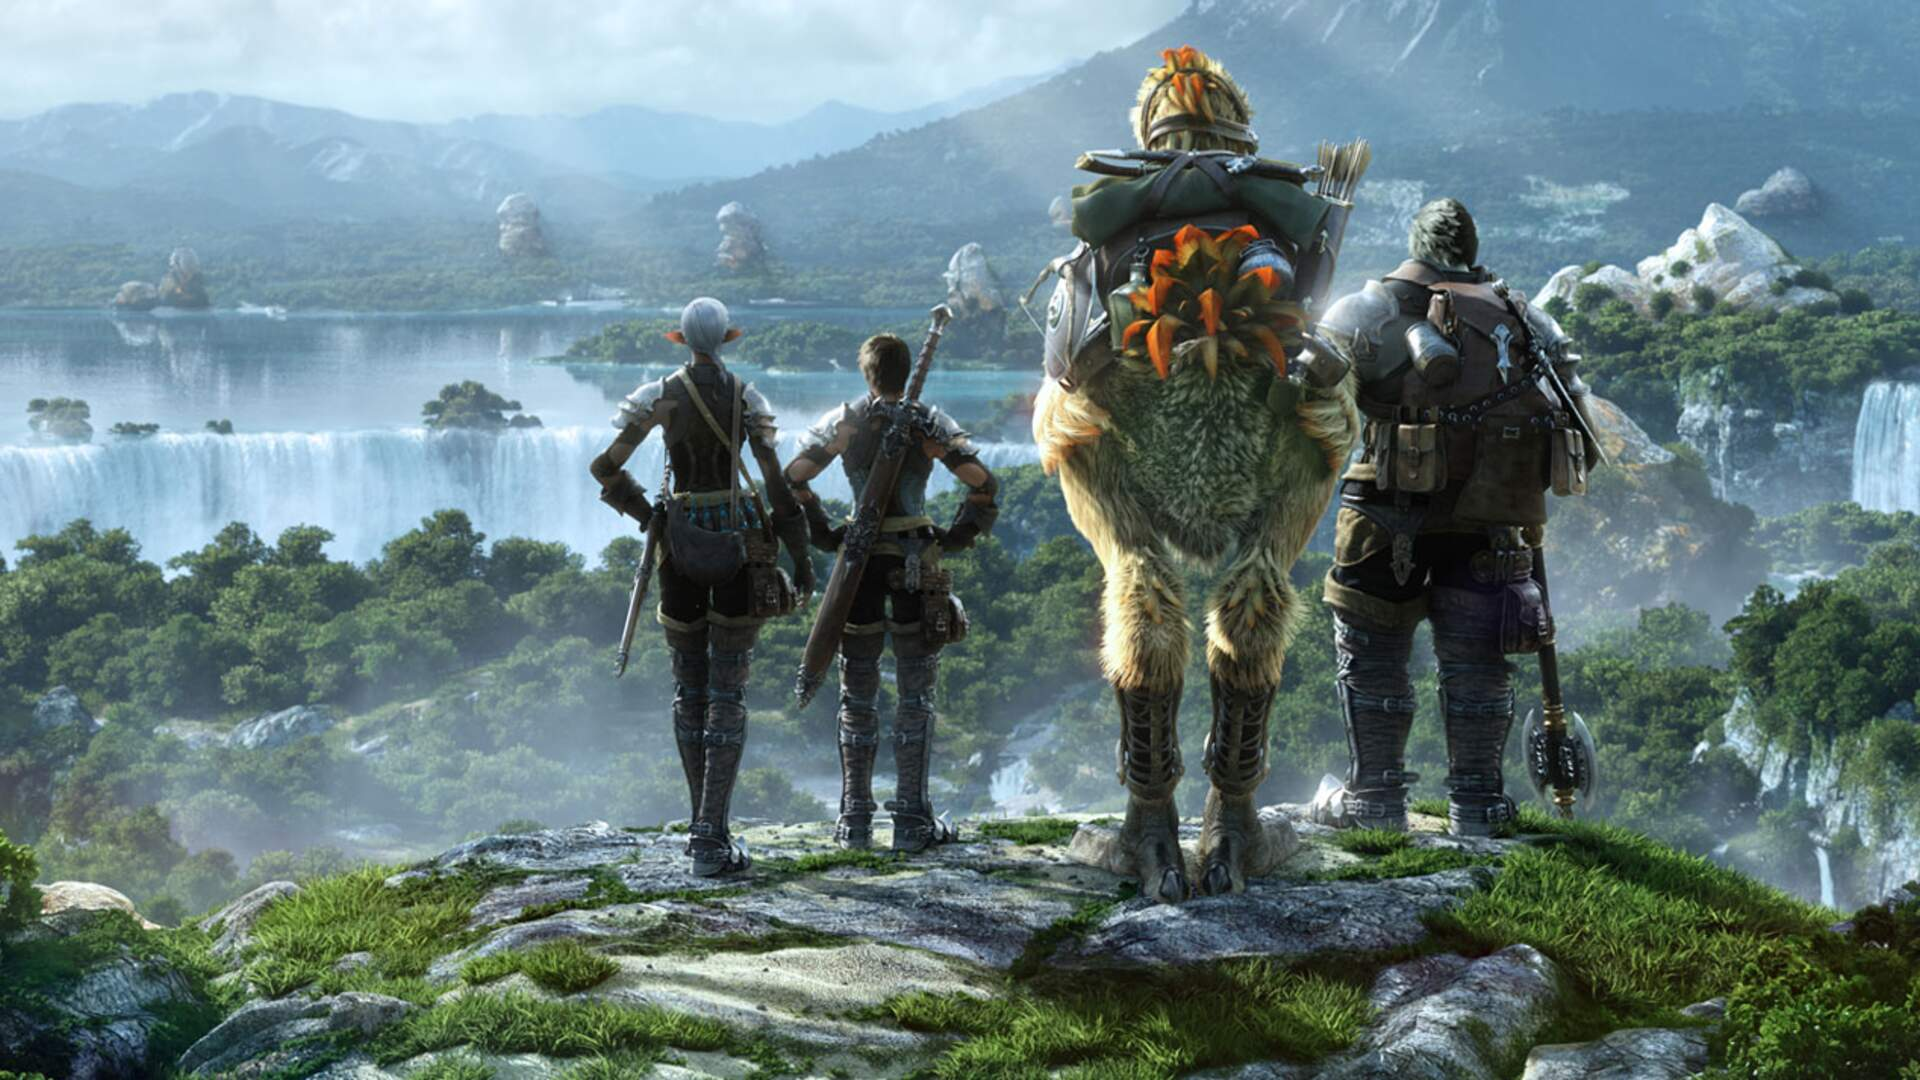 What's Next for Final Fantasy XIV: A Realm Reborn?